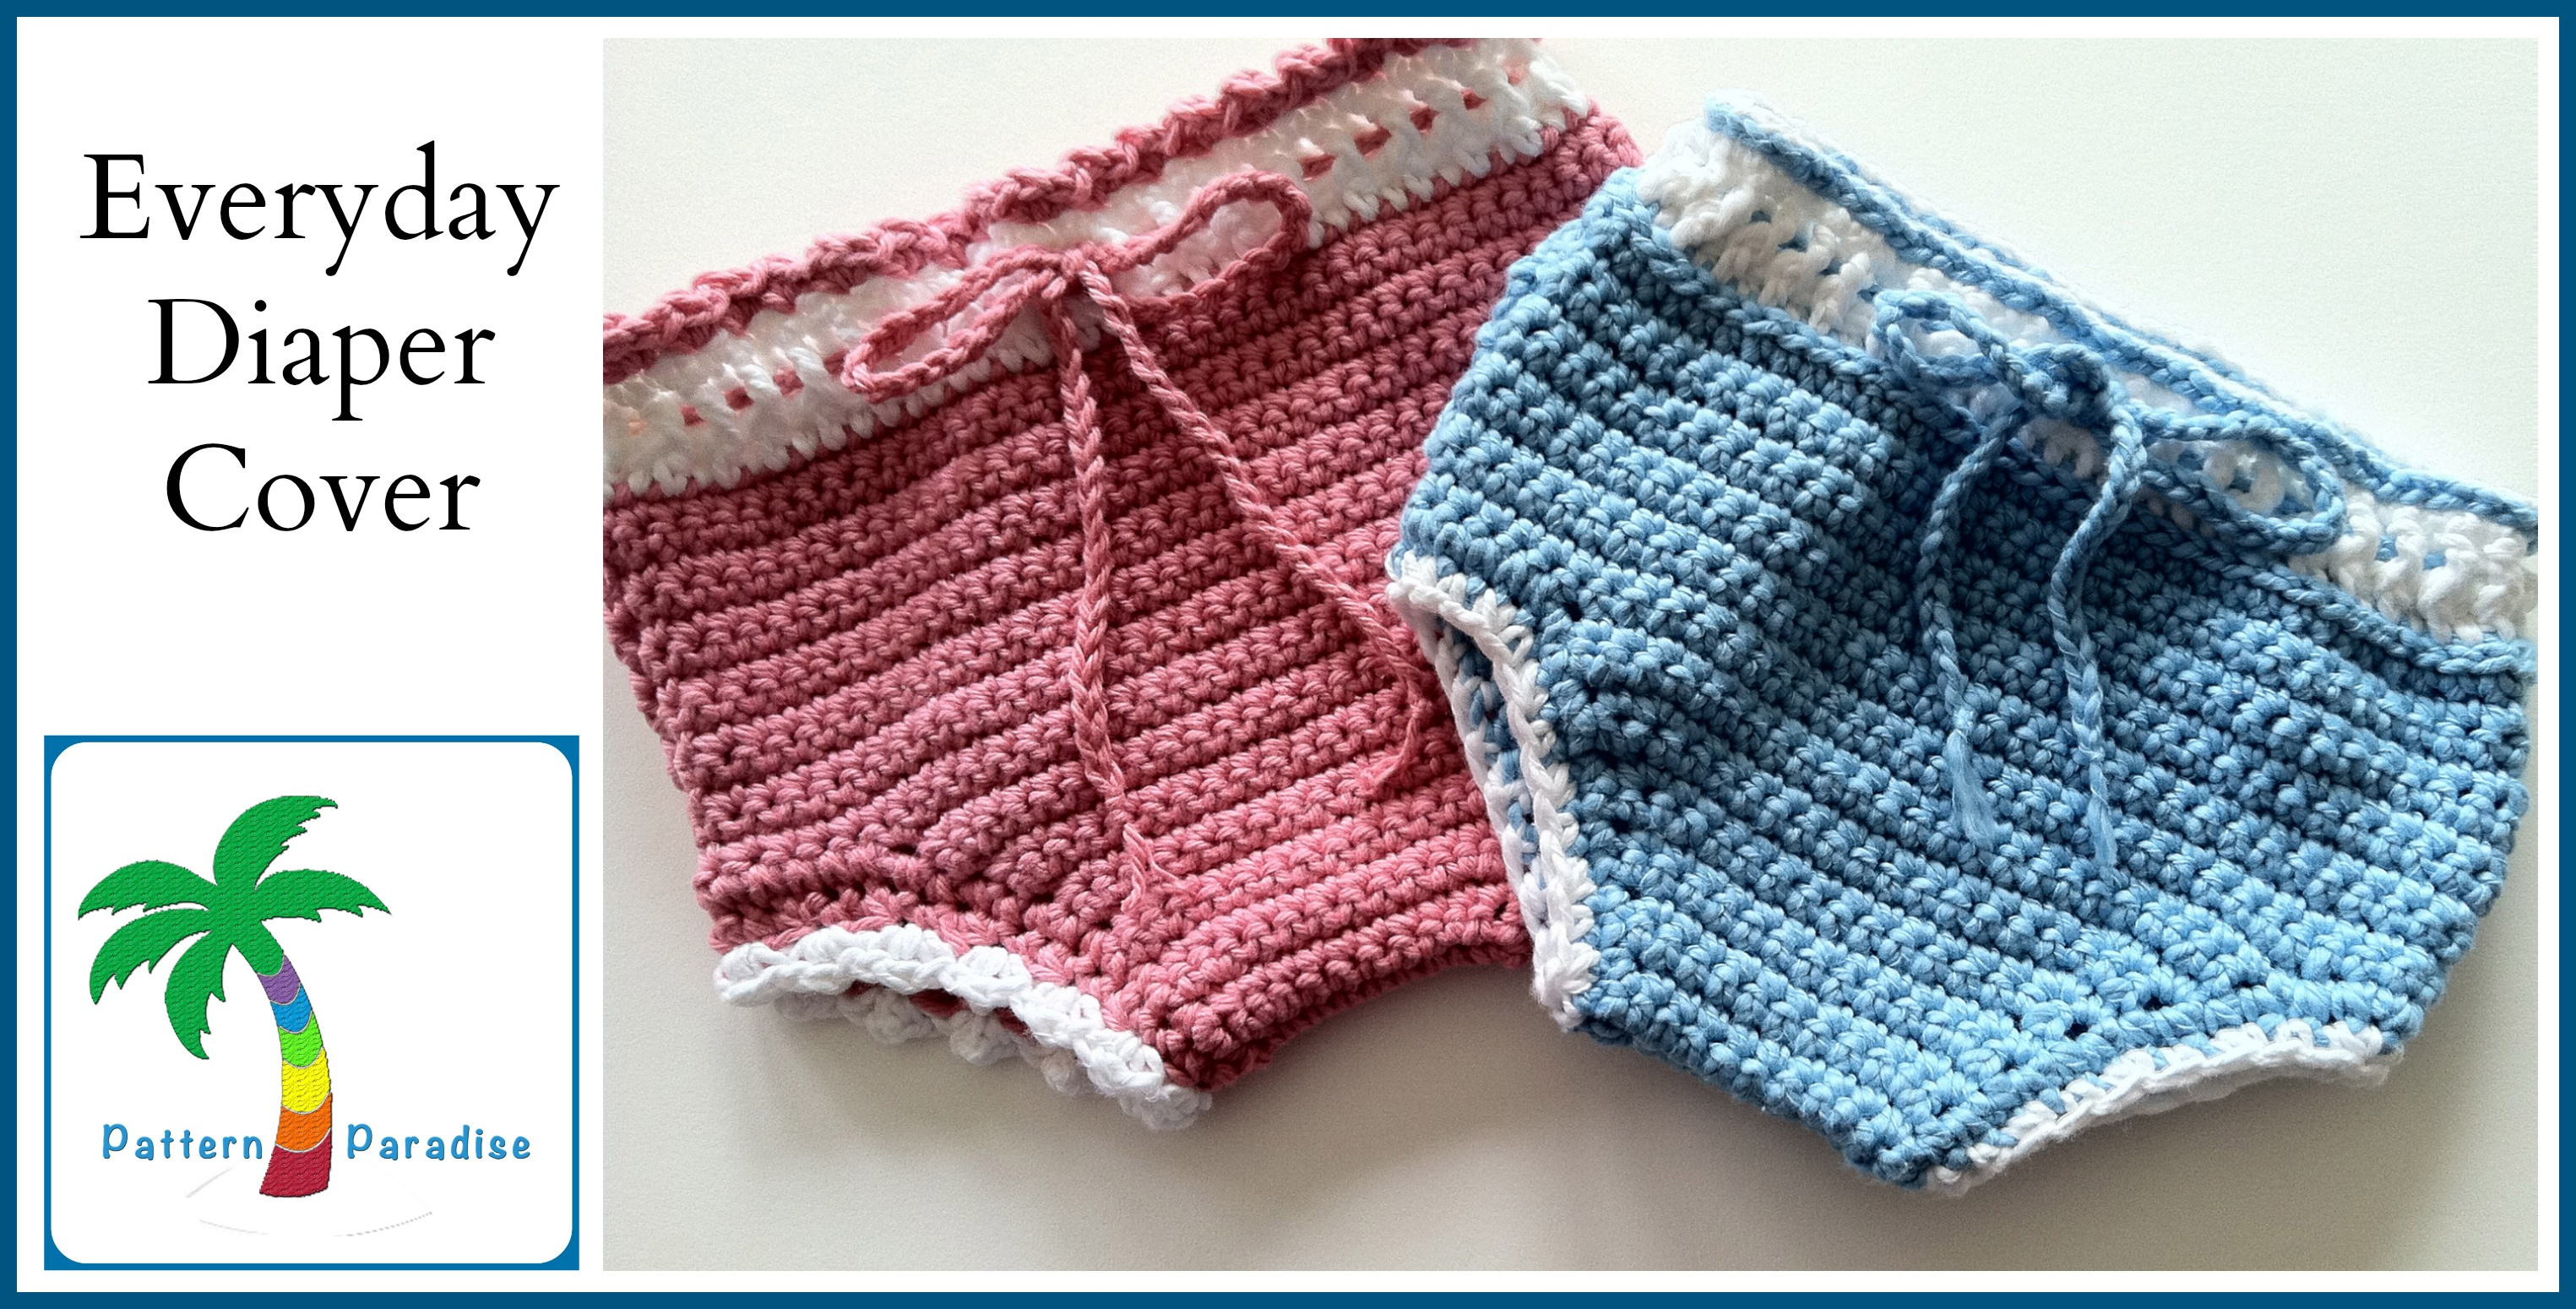 Best Of Everyday Diaper Cover Pattern Paradise Diaper Cover Pattern Of Beautiful 42 Models Diaper Cover Pattern